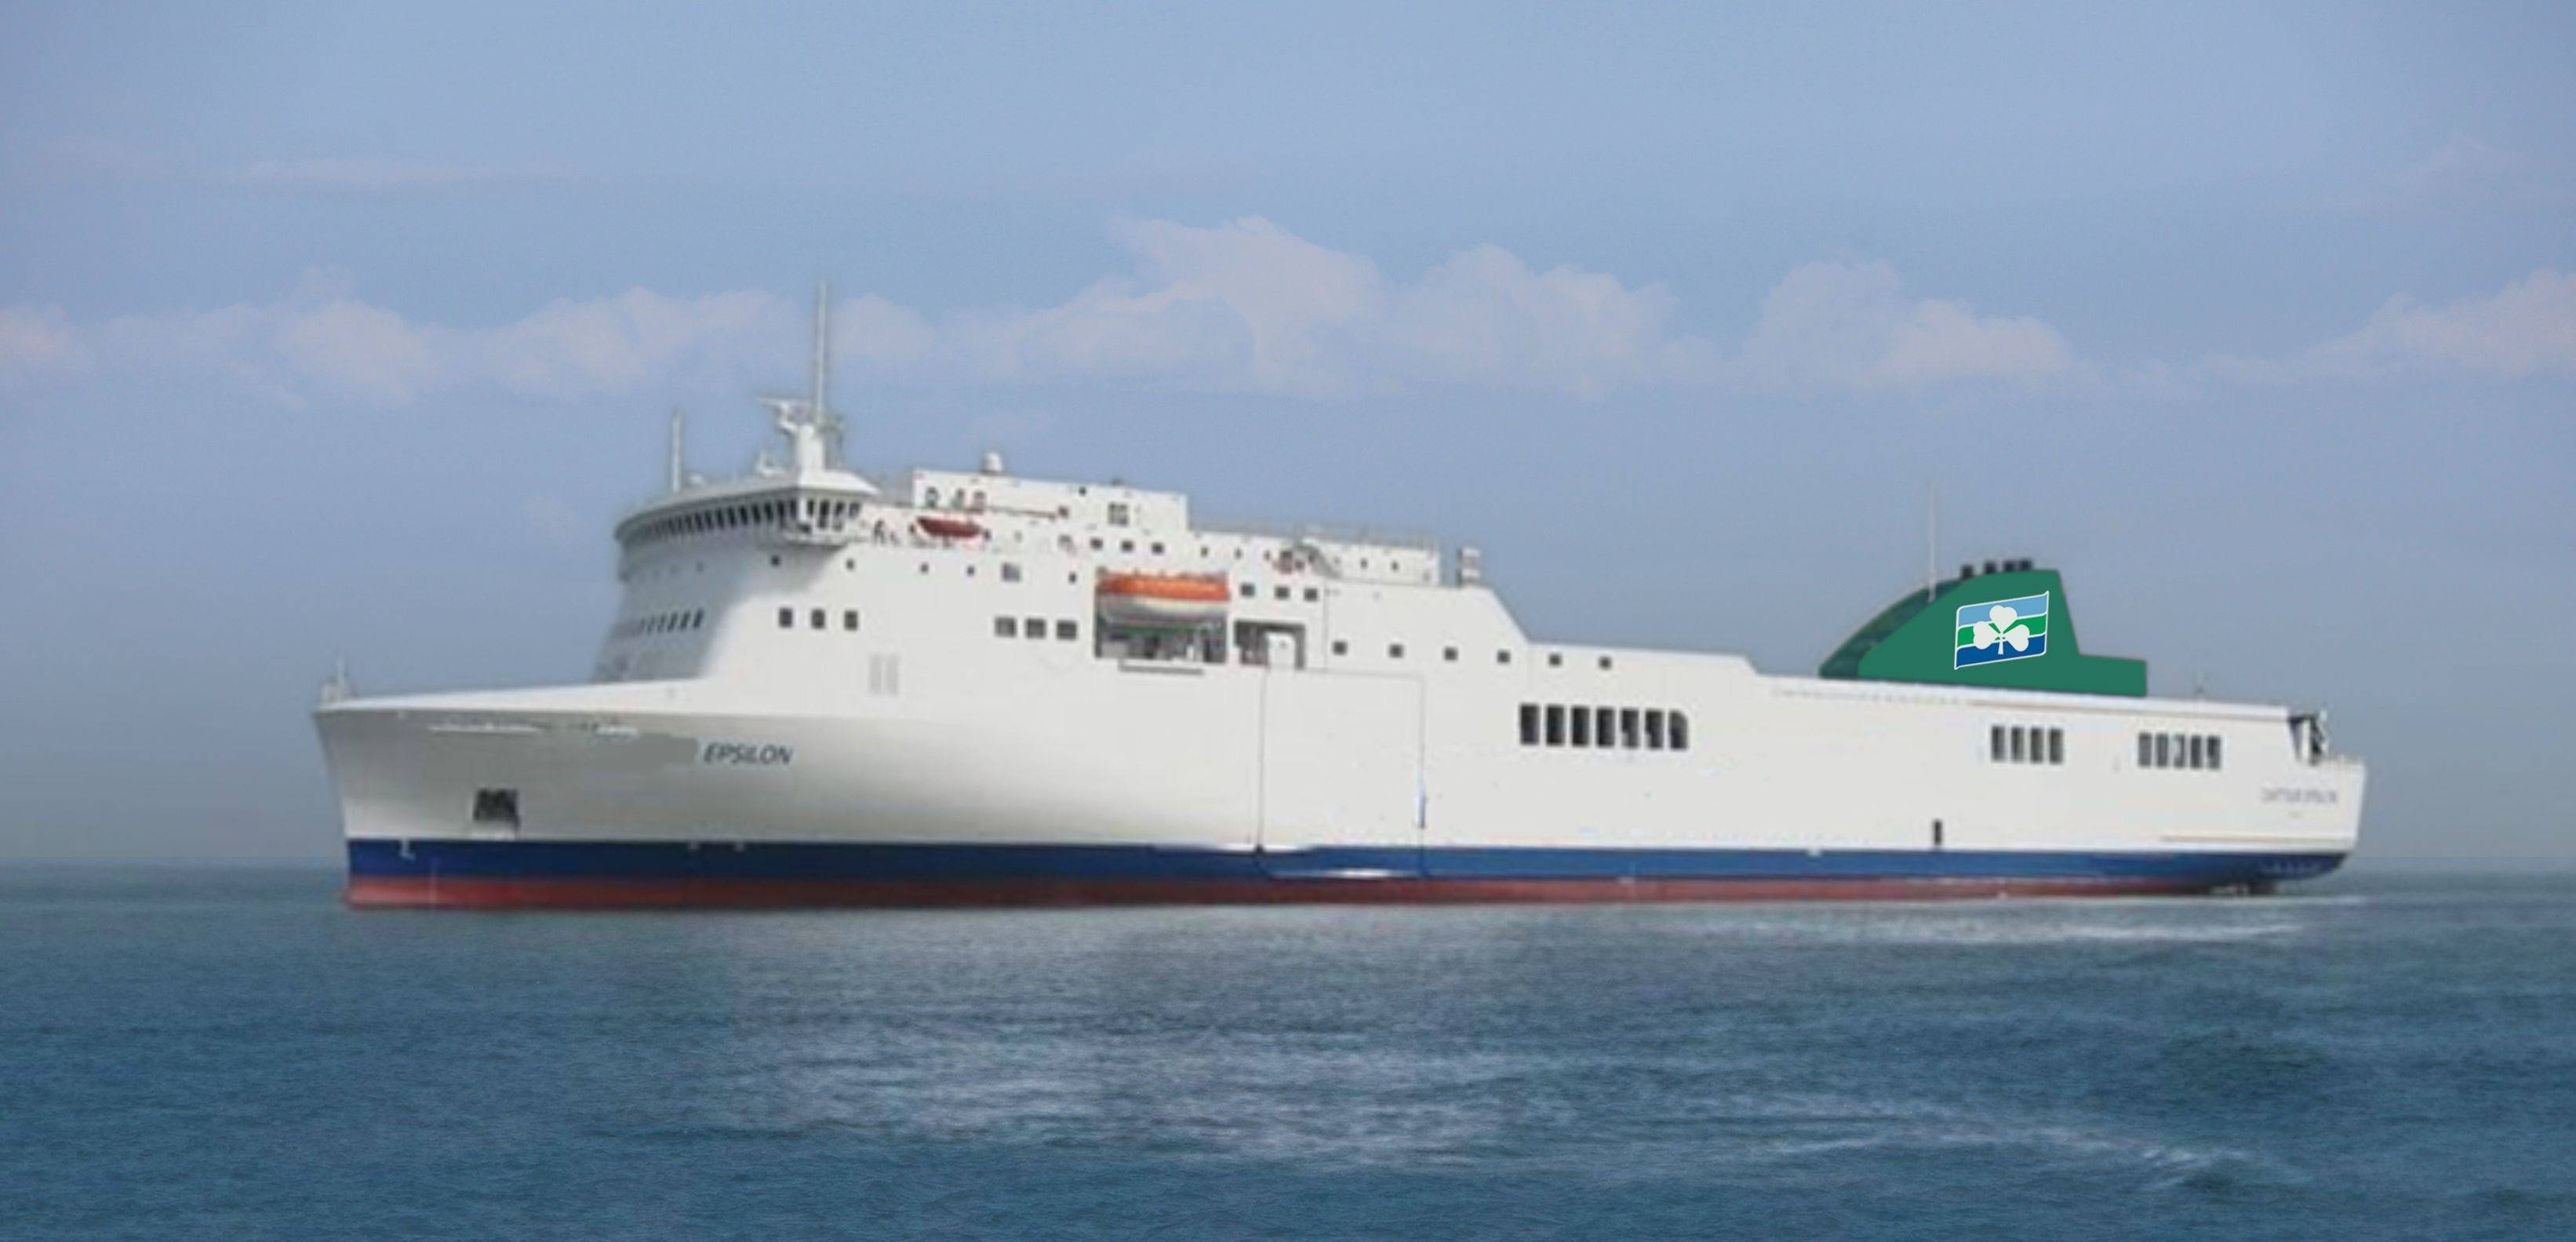 Irish ferries launches dublin cherbourg ferry route - Rosslare ferry port arrivals ...